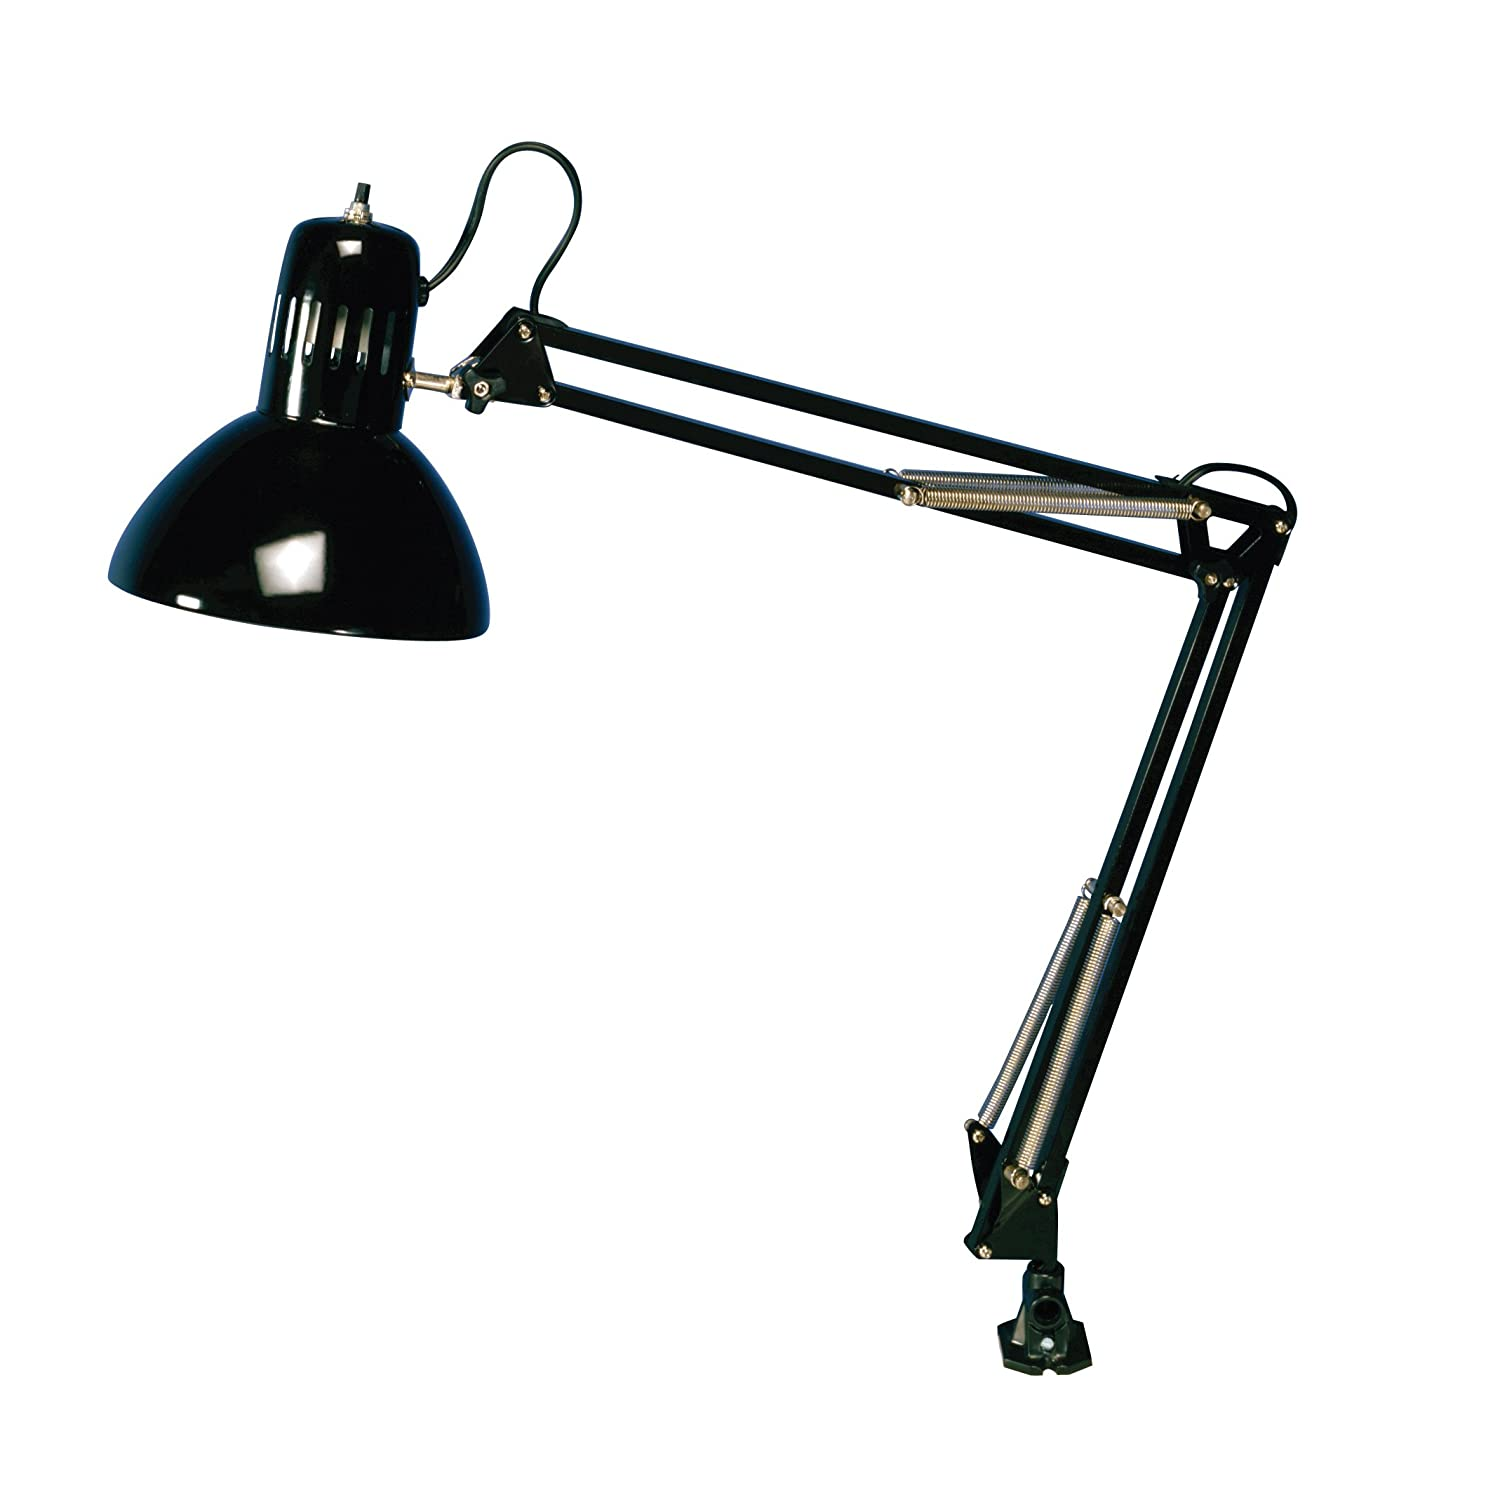 Amazon.com: Studio Designs 12021 Swing Arm Lamp, Black: Arts, Crafts &  Sewing - Amazon.com: Studio Designs 12021 Swing Arm Lamp, Black: Arts